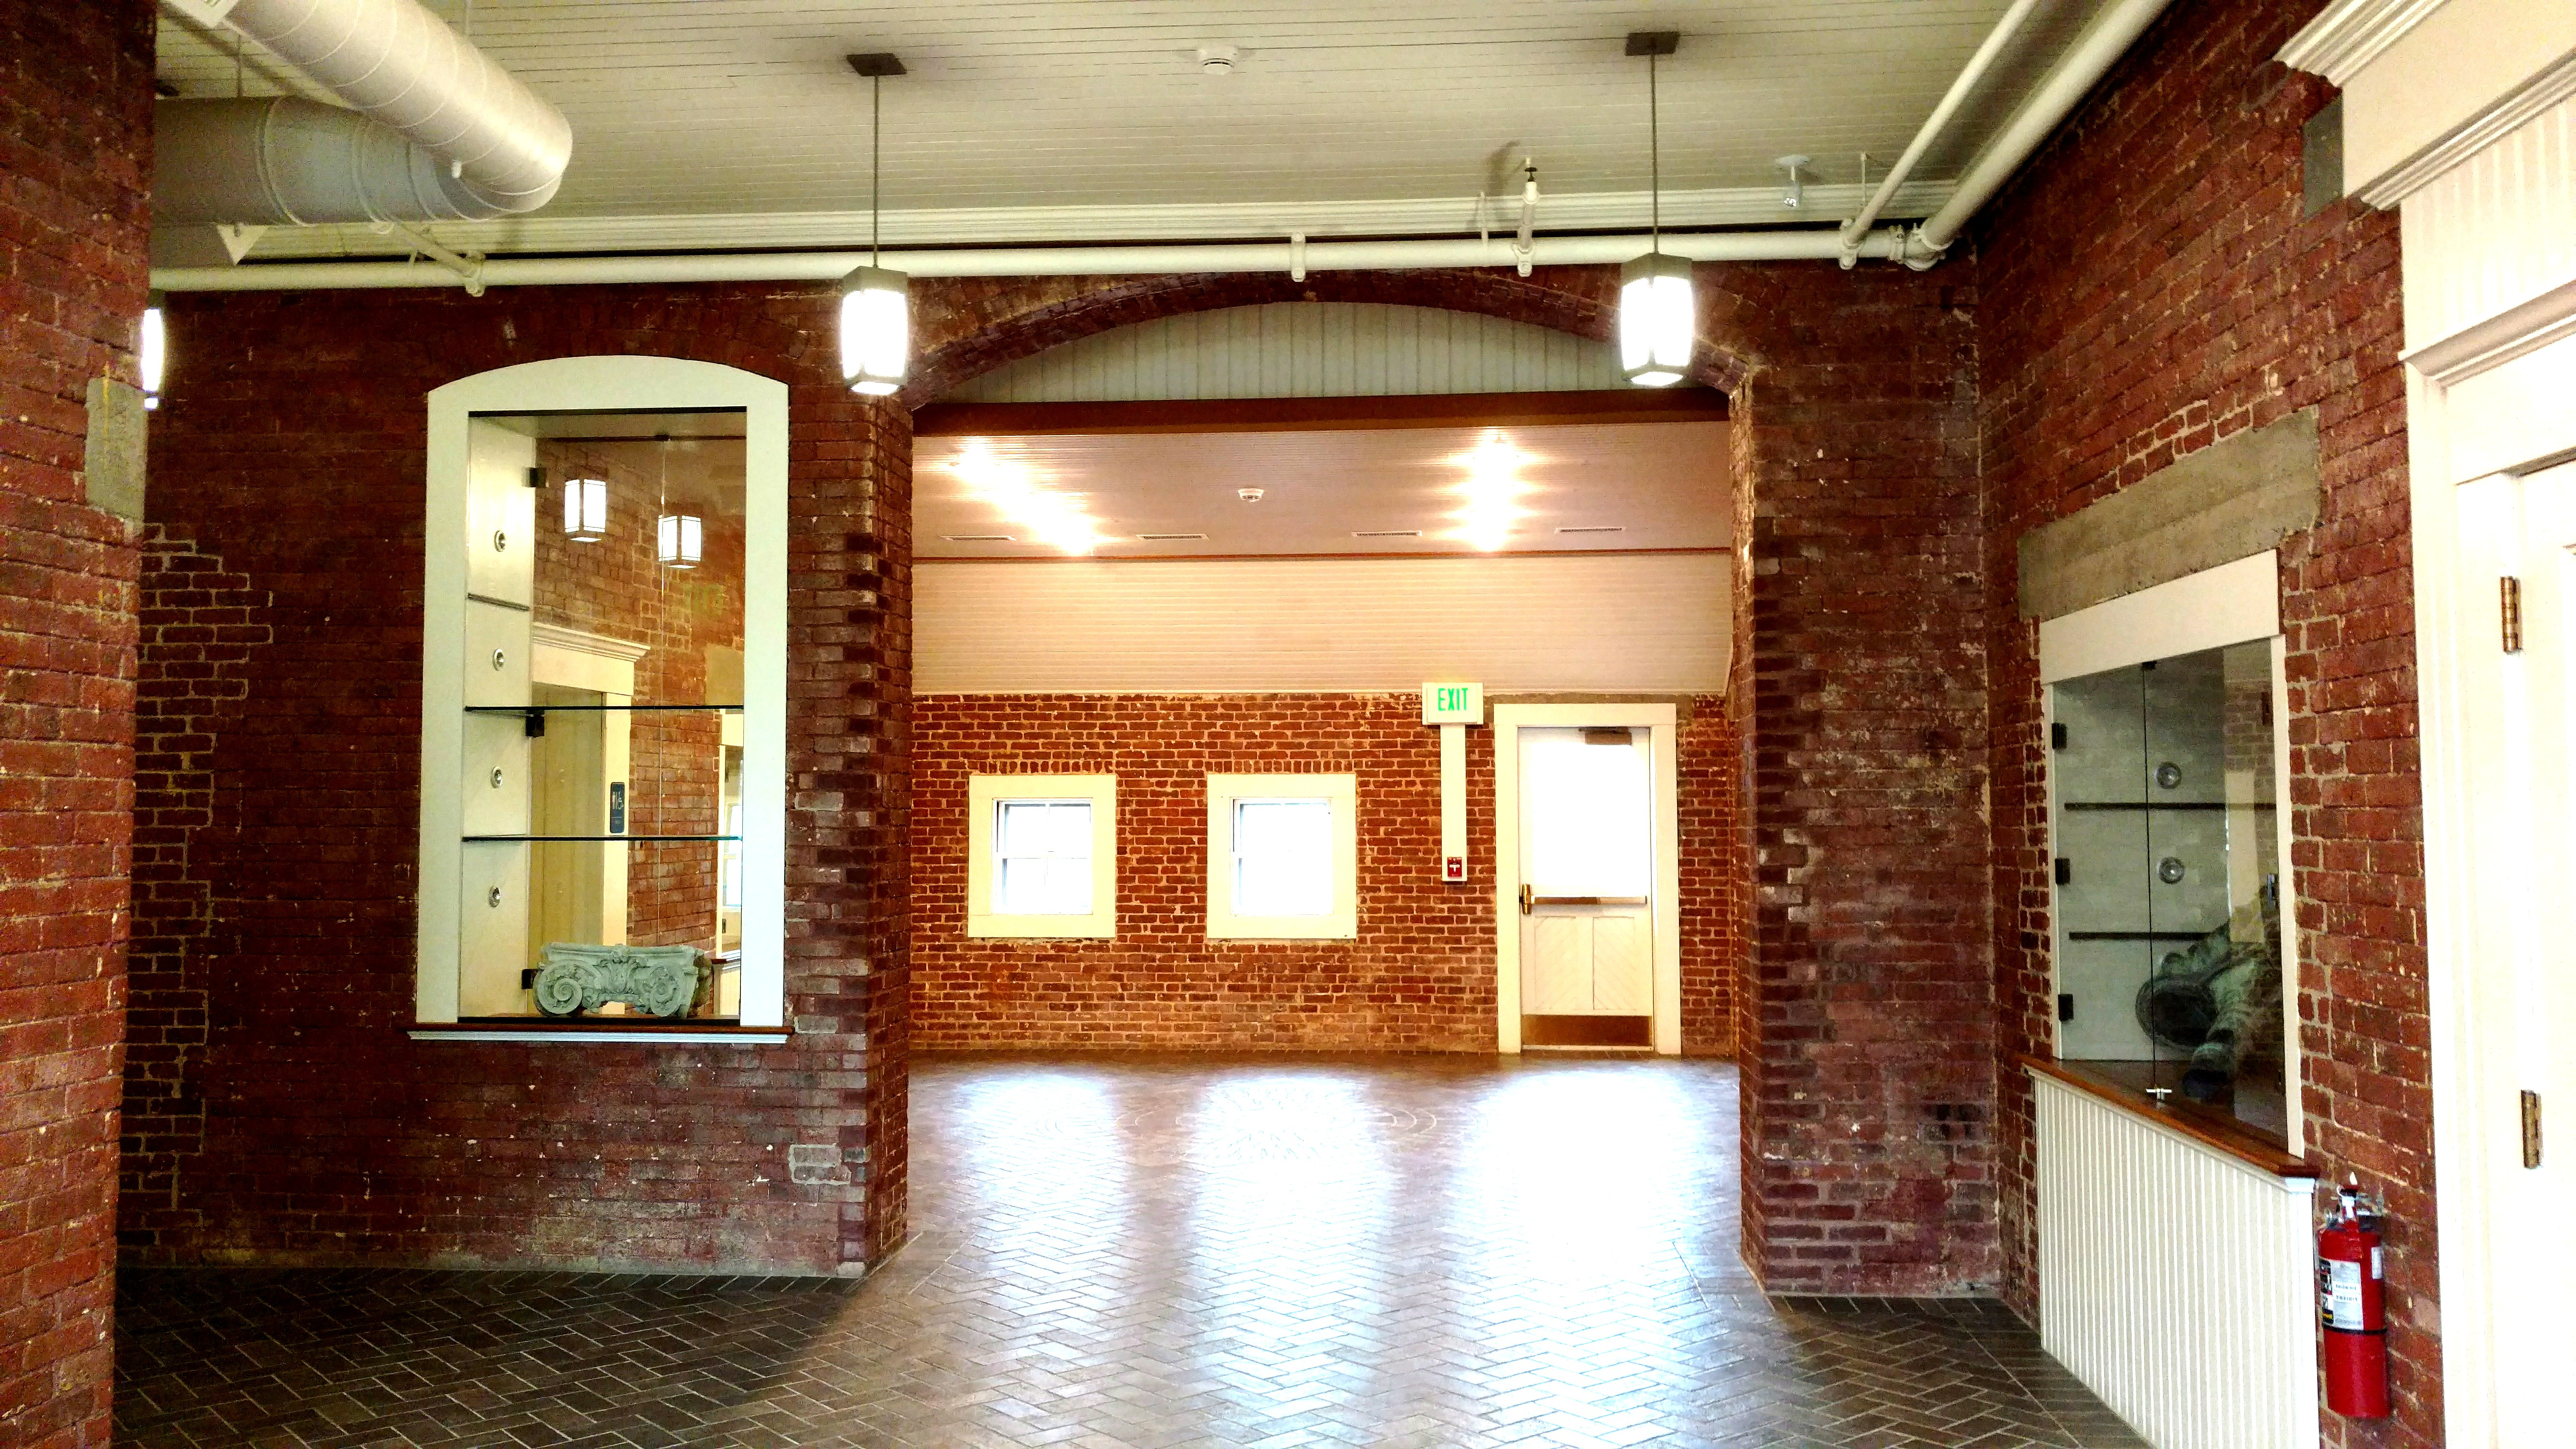 Another example of the wide-arched doorways of the stables. Photo taken by Ellen Tuttle near DiStefano Lecture Hall in Antone Academic Center.